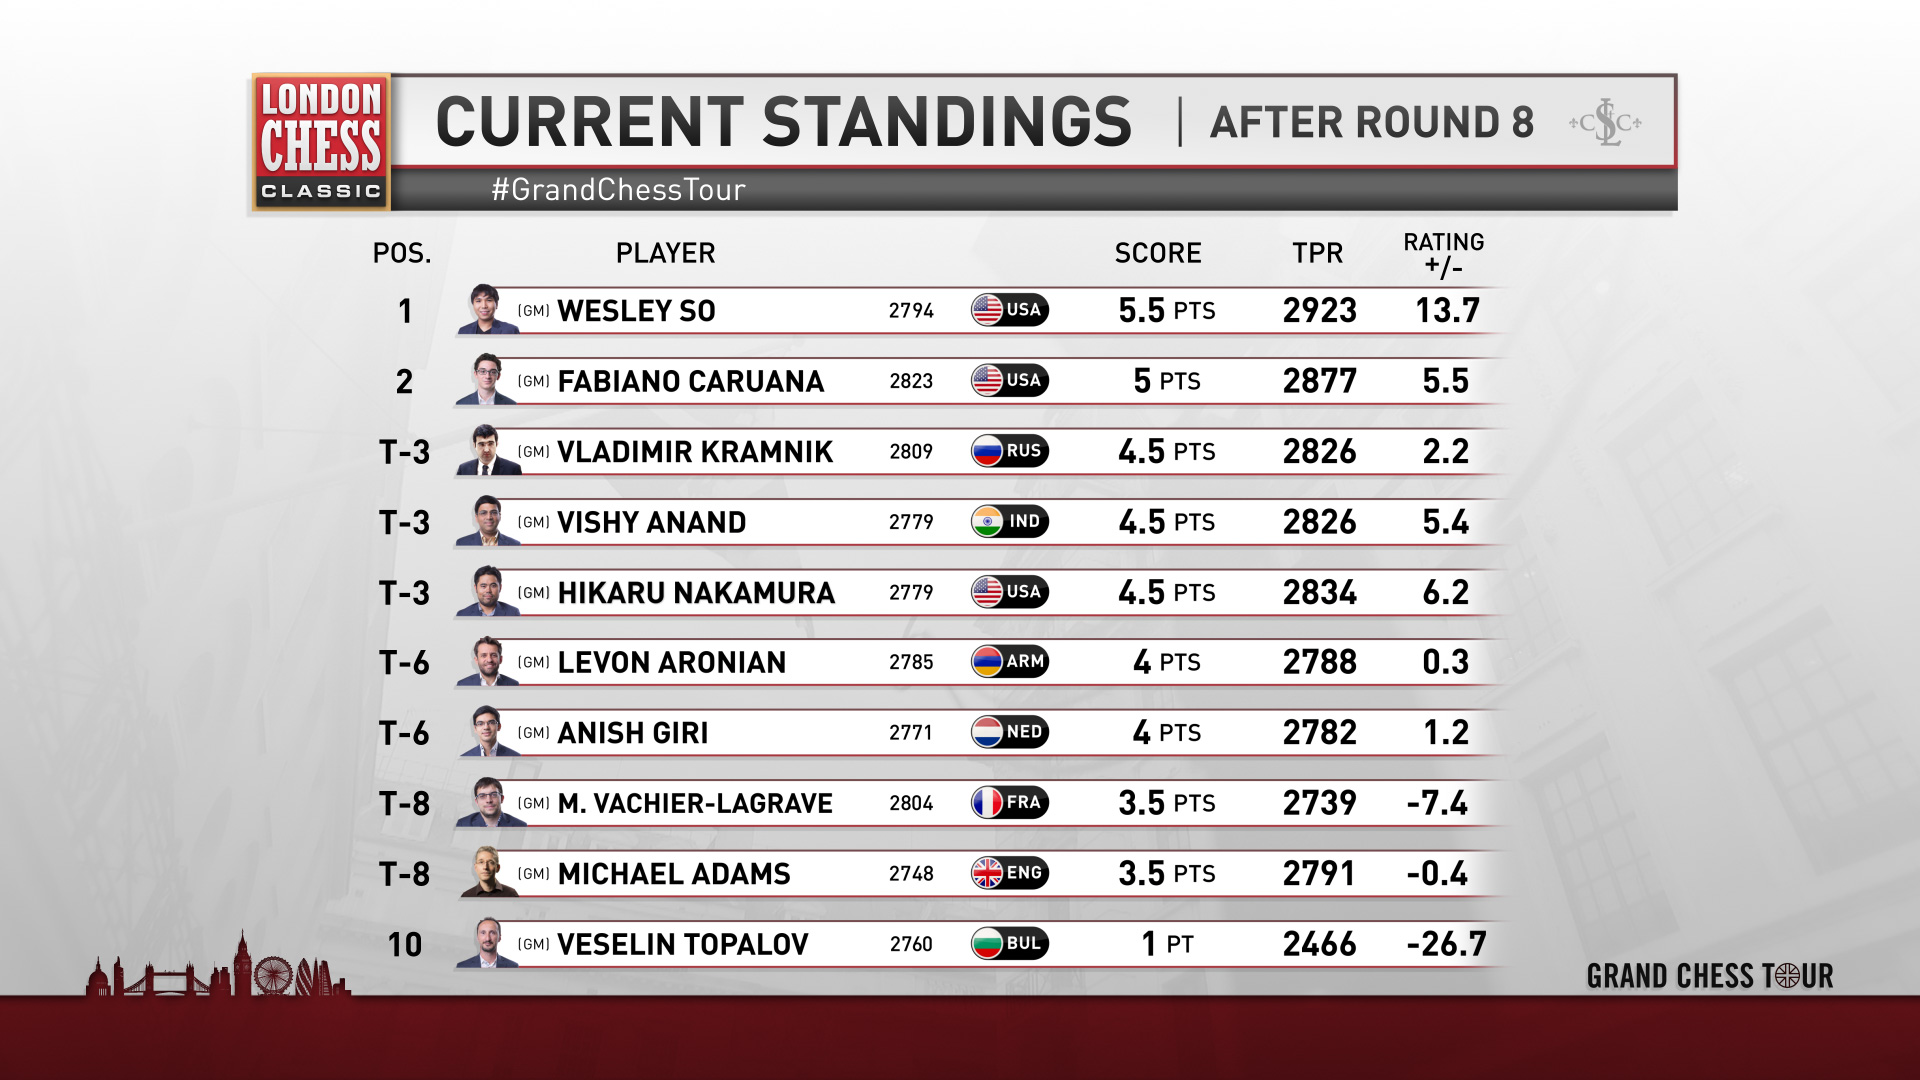 London Chess Classic Standings